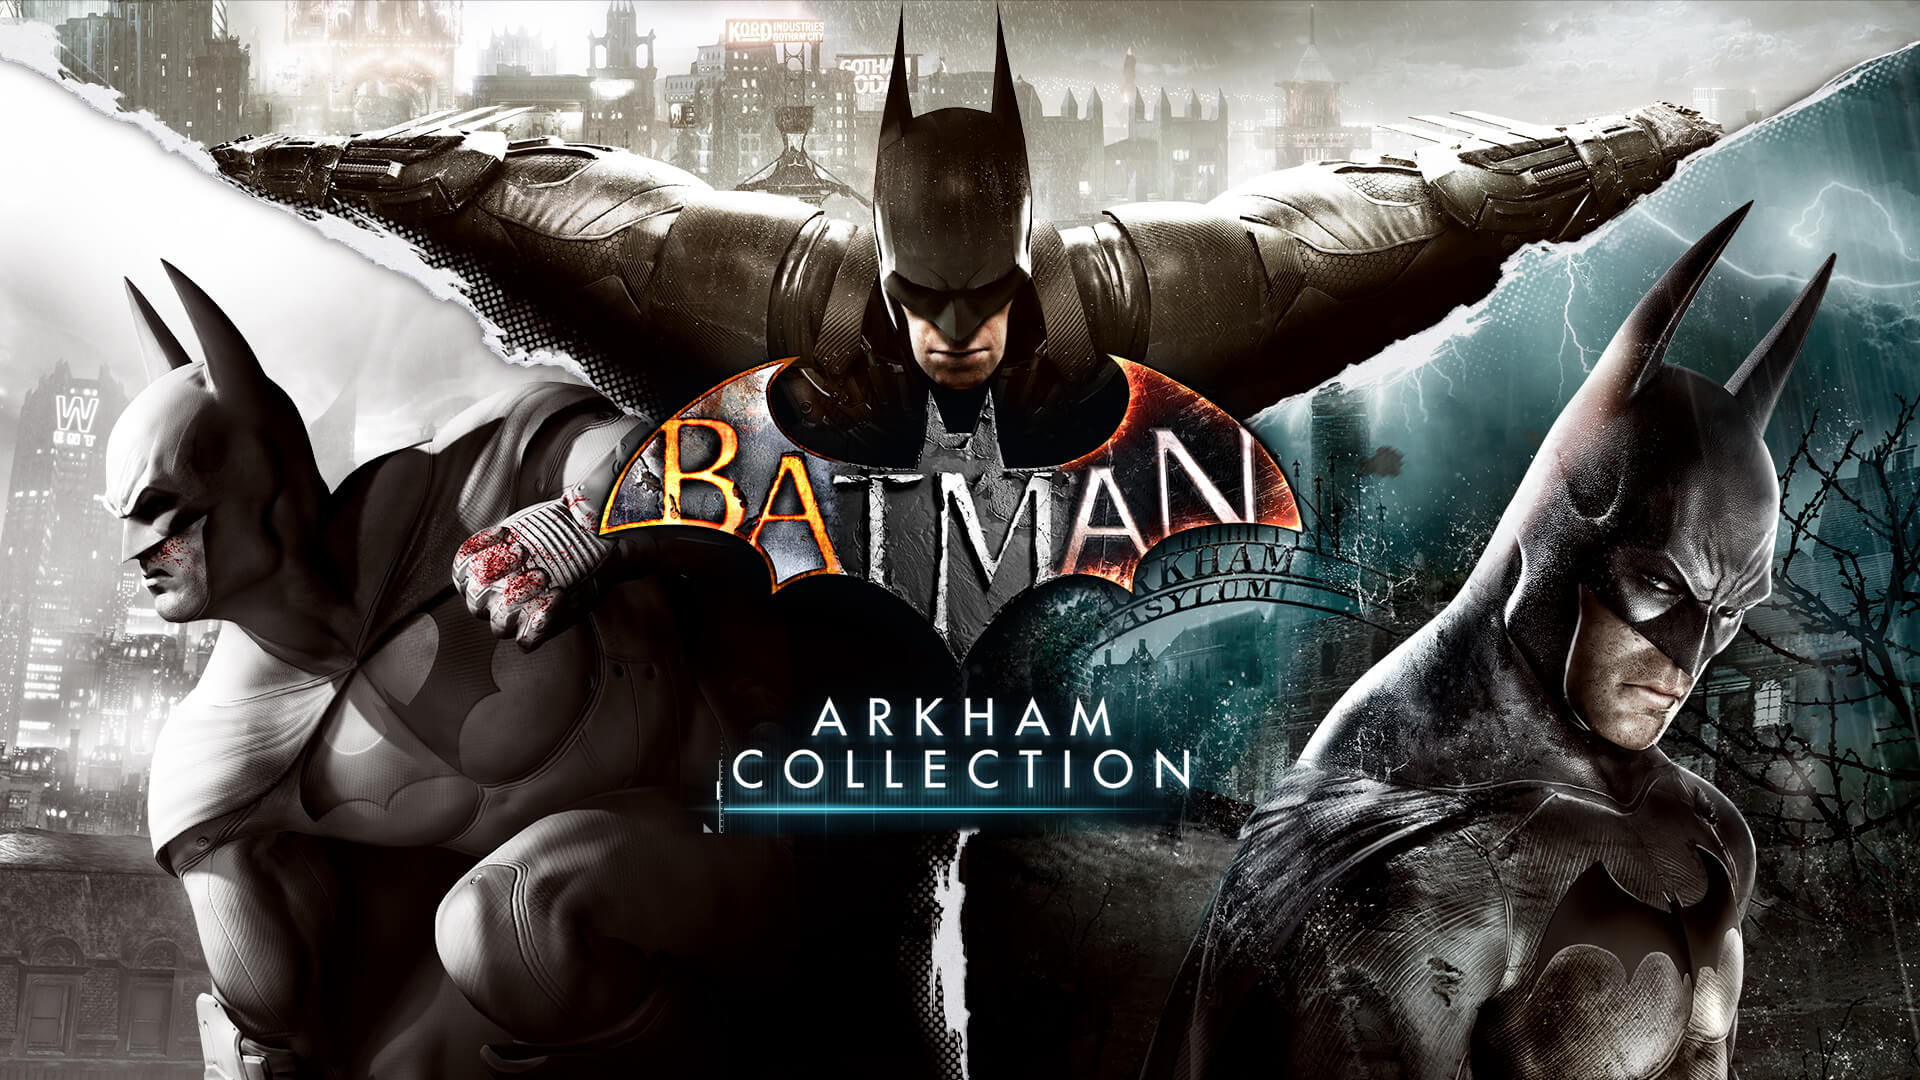 Batman: za darmo 6 gier z Arkham Collection i Lego Trilogy